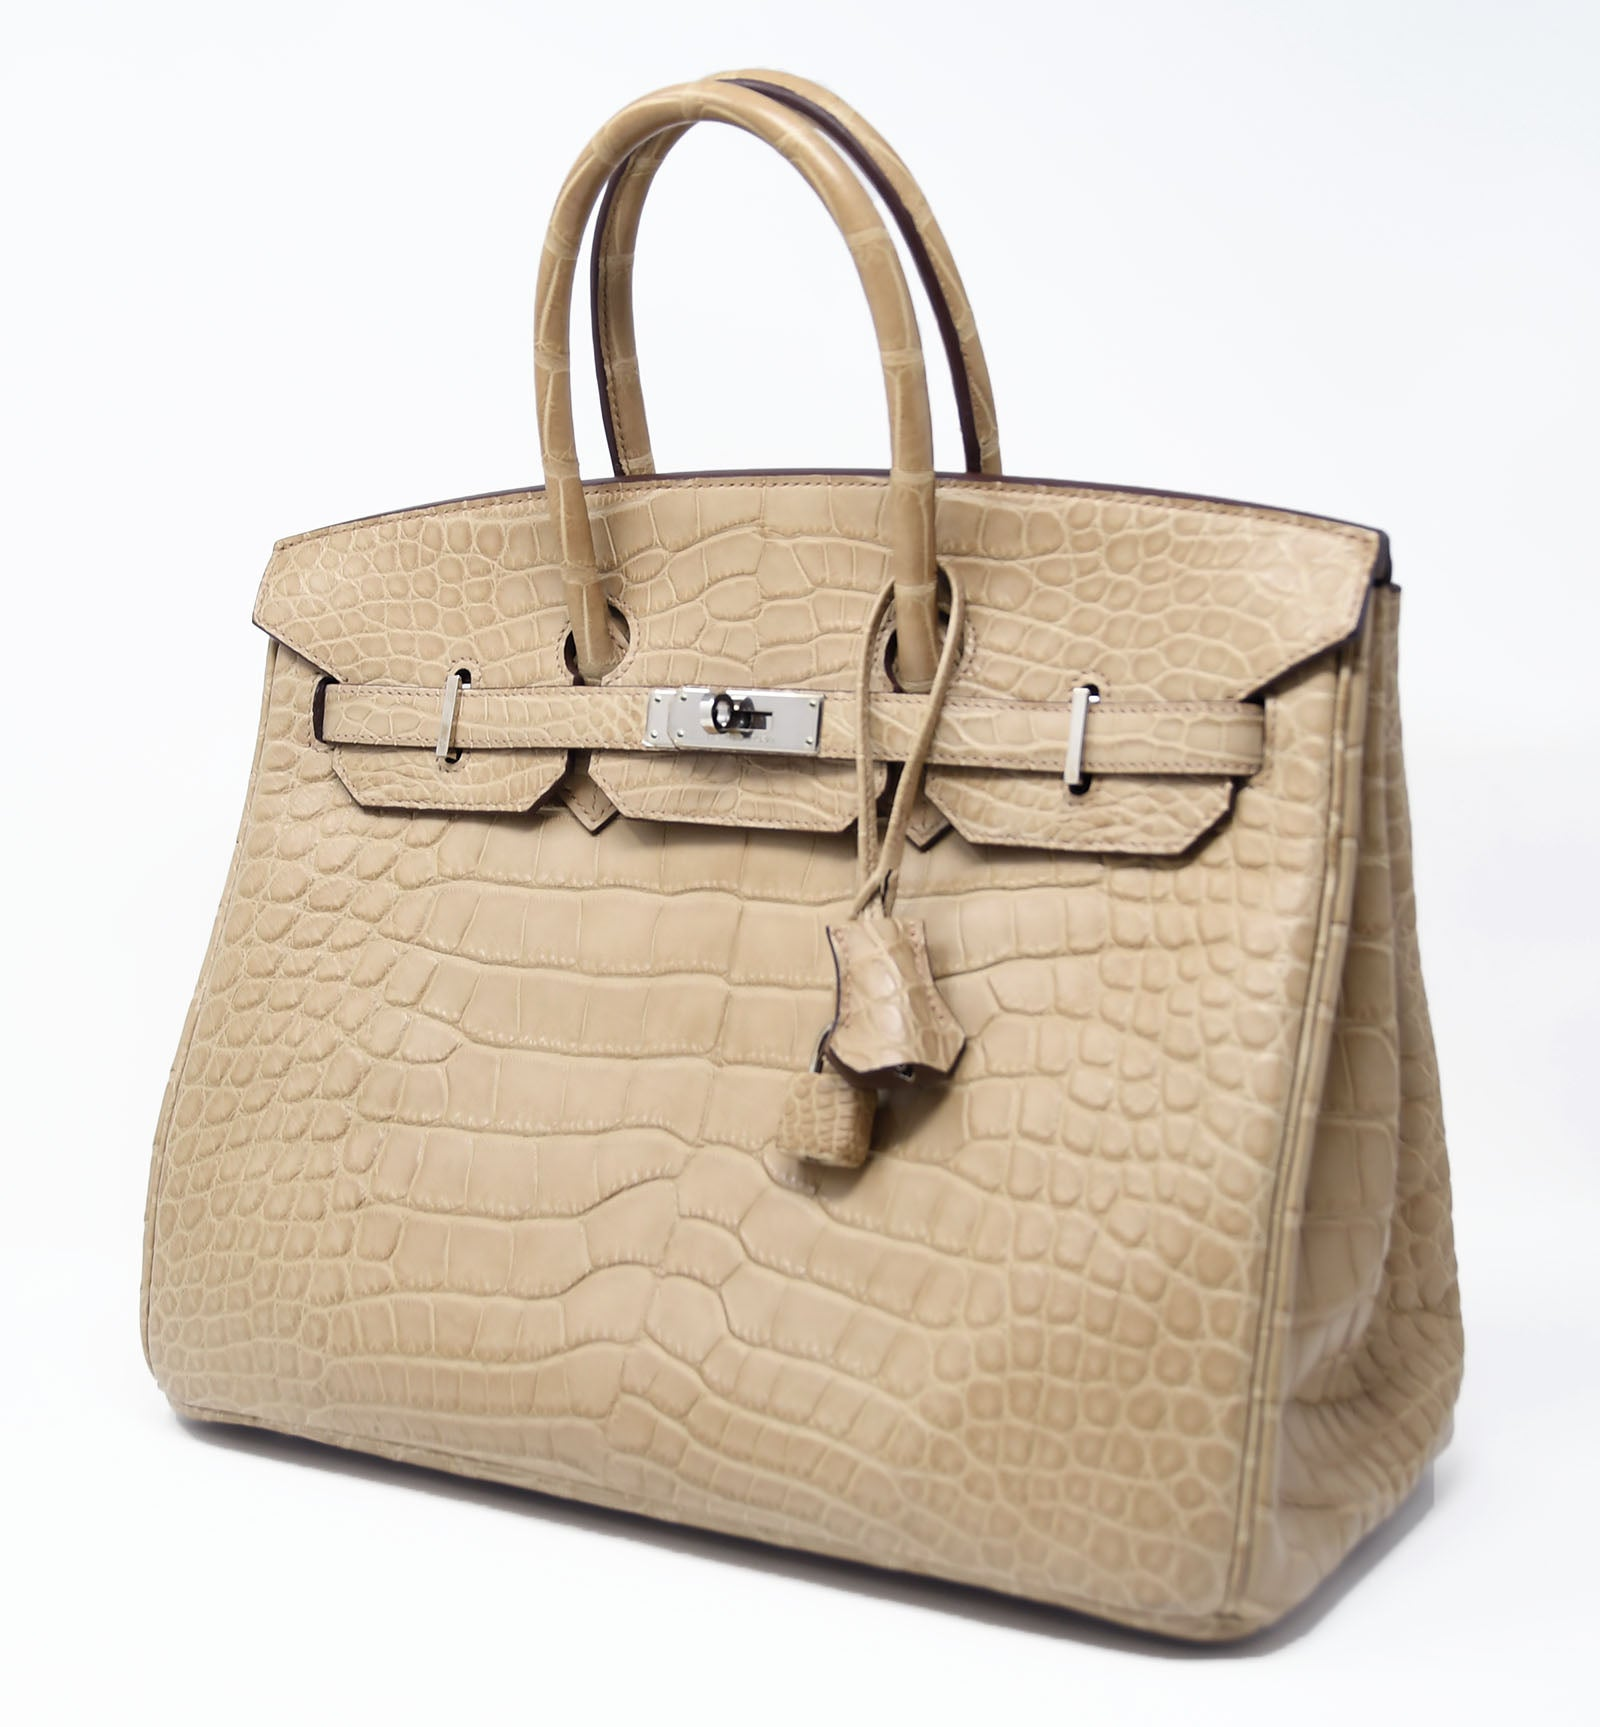 444de5638a ... where can i buy hermes birkin bag 35cm natural alligator with palladium  hardware for sale at